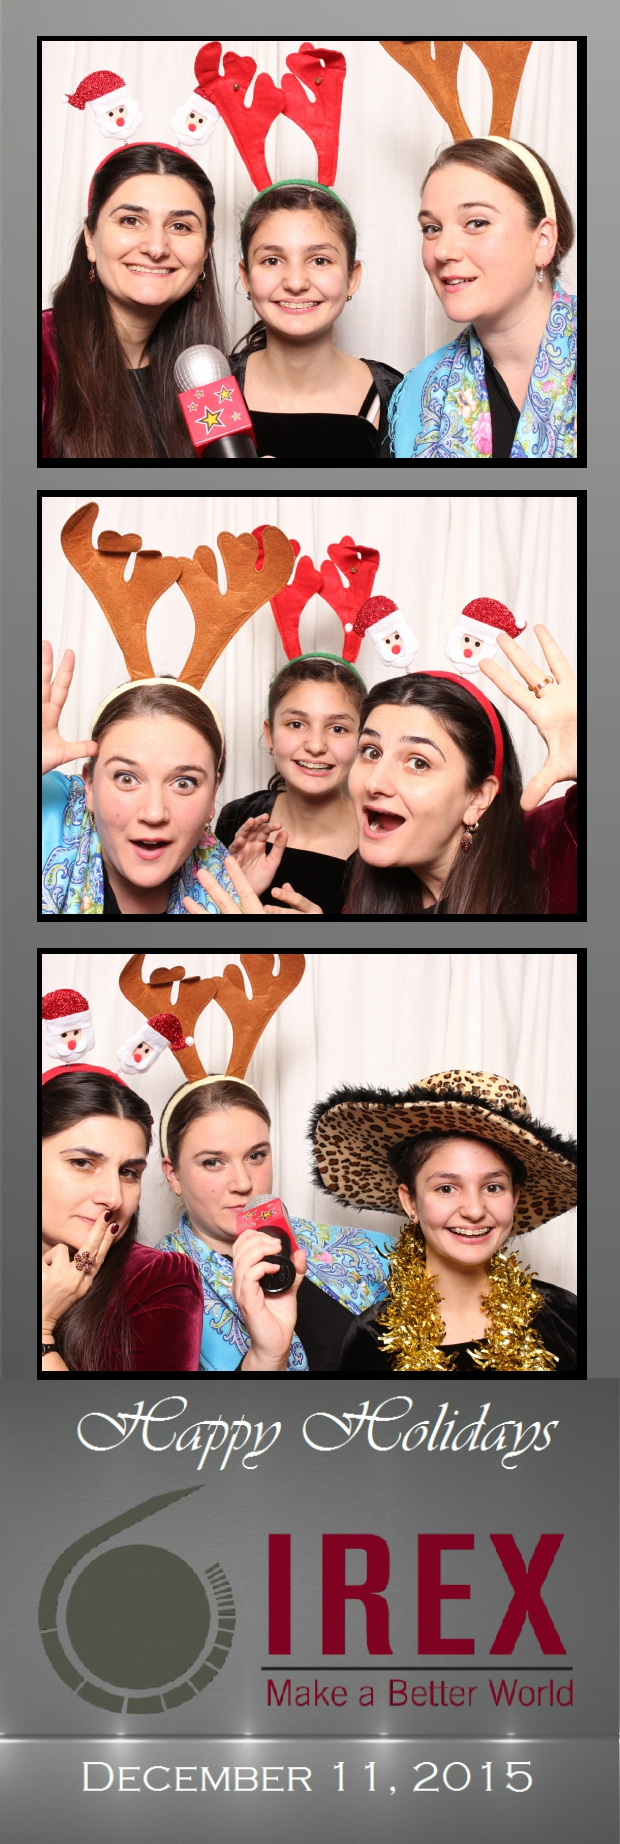 Guest House Events Photo Booth Strips IREX (32).jpg